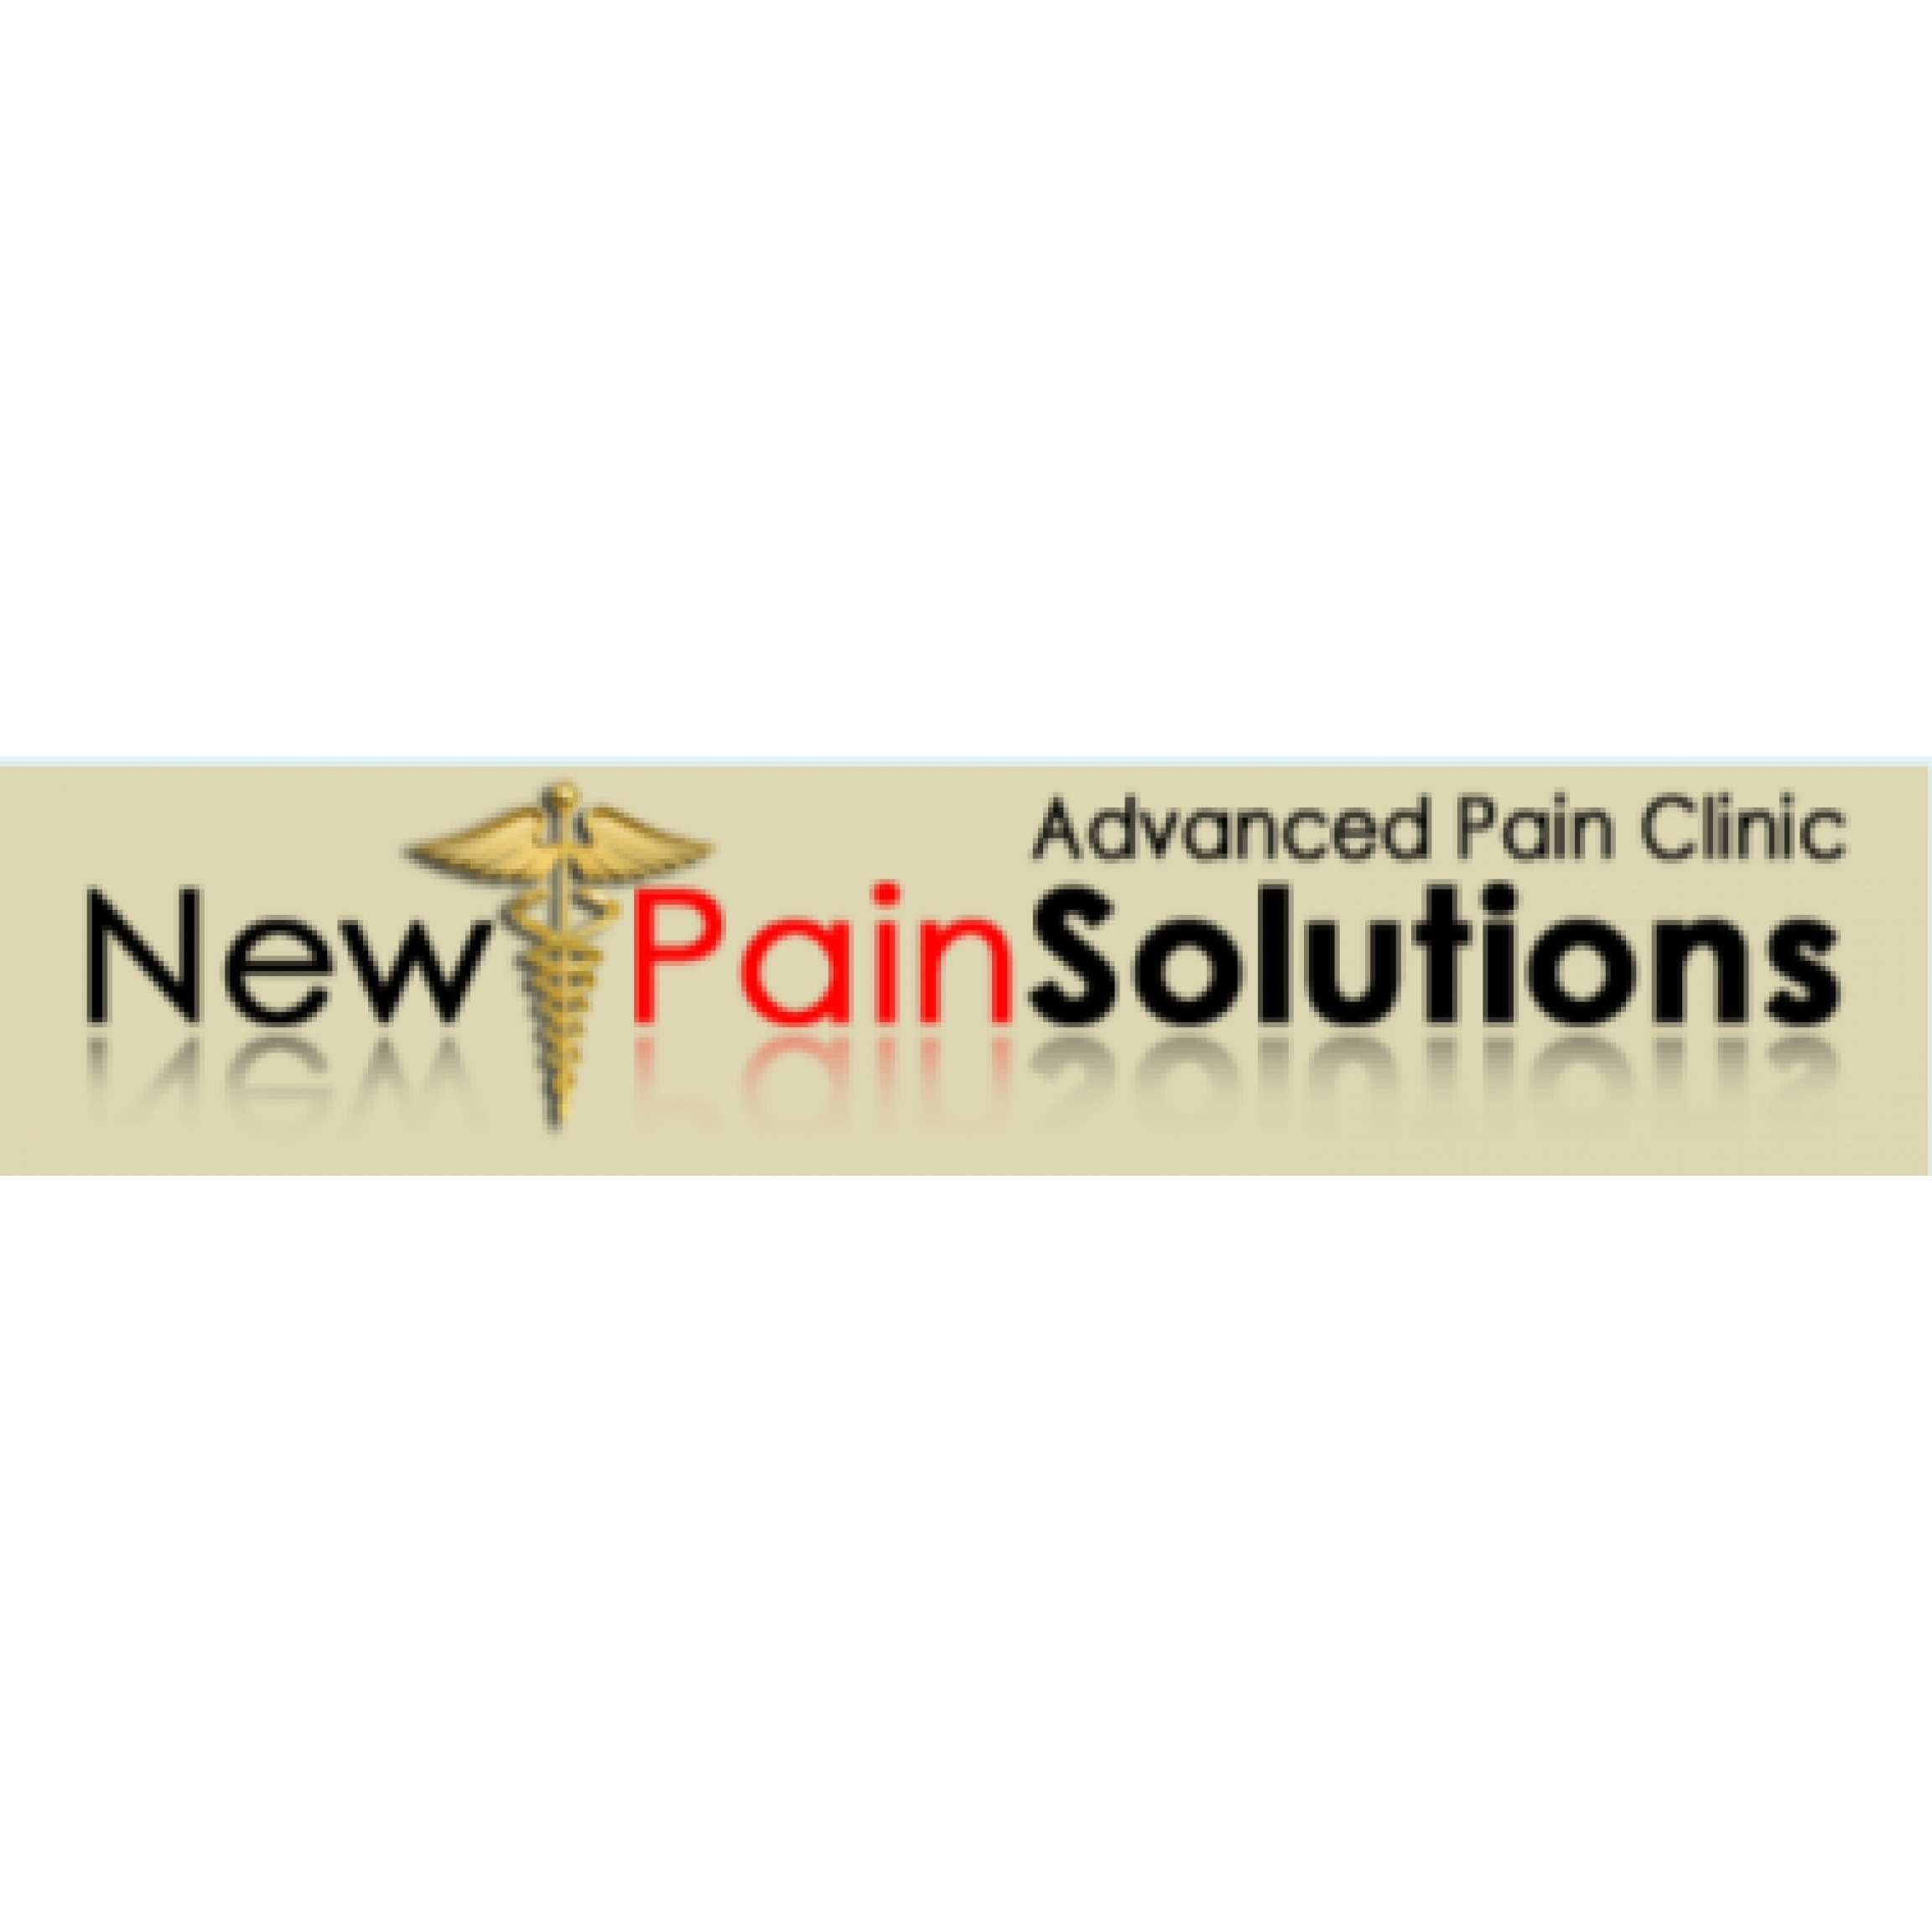 New Pain Solutions / Elite Medical Fitness image 1